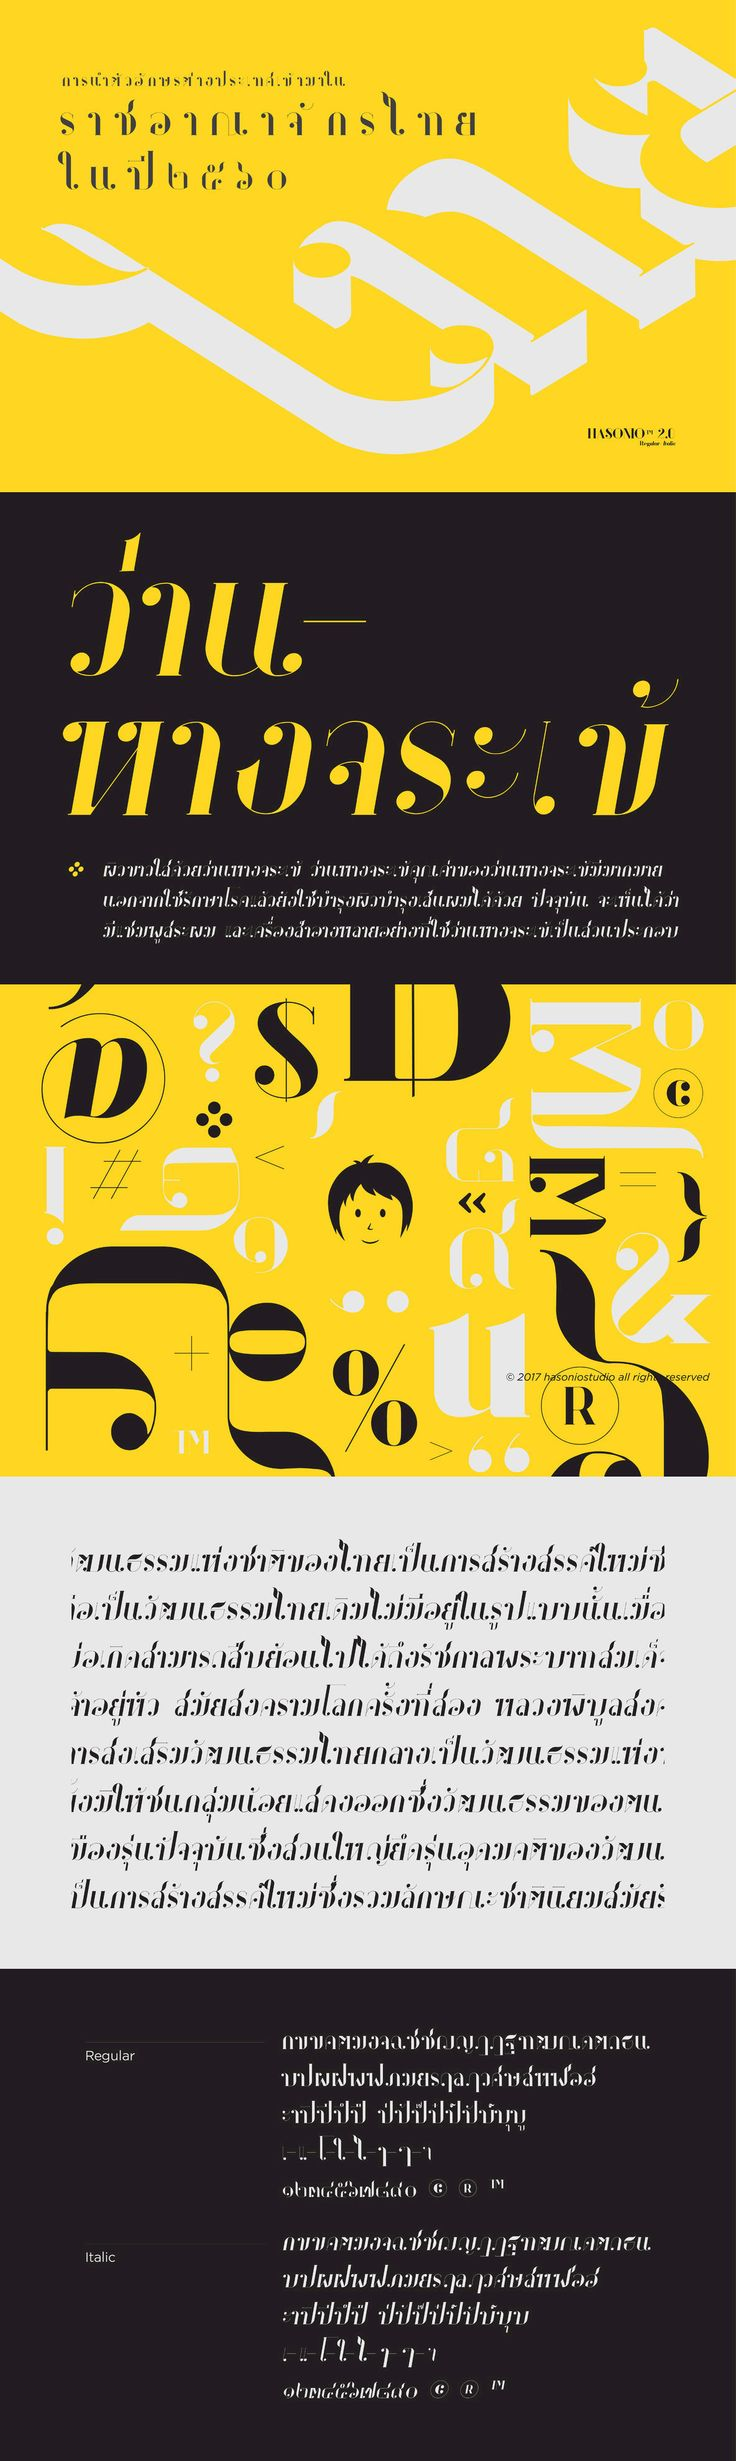 HASONIO 2 - HASONIO 2 is a elegant and classic style thai language typeface design, published by Hason Nio.